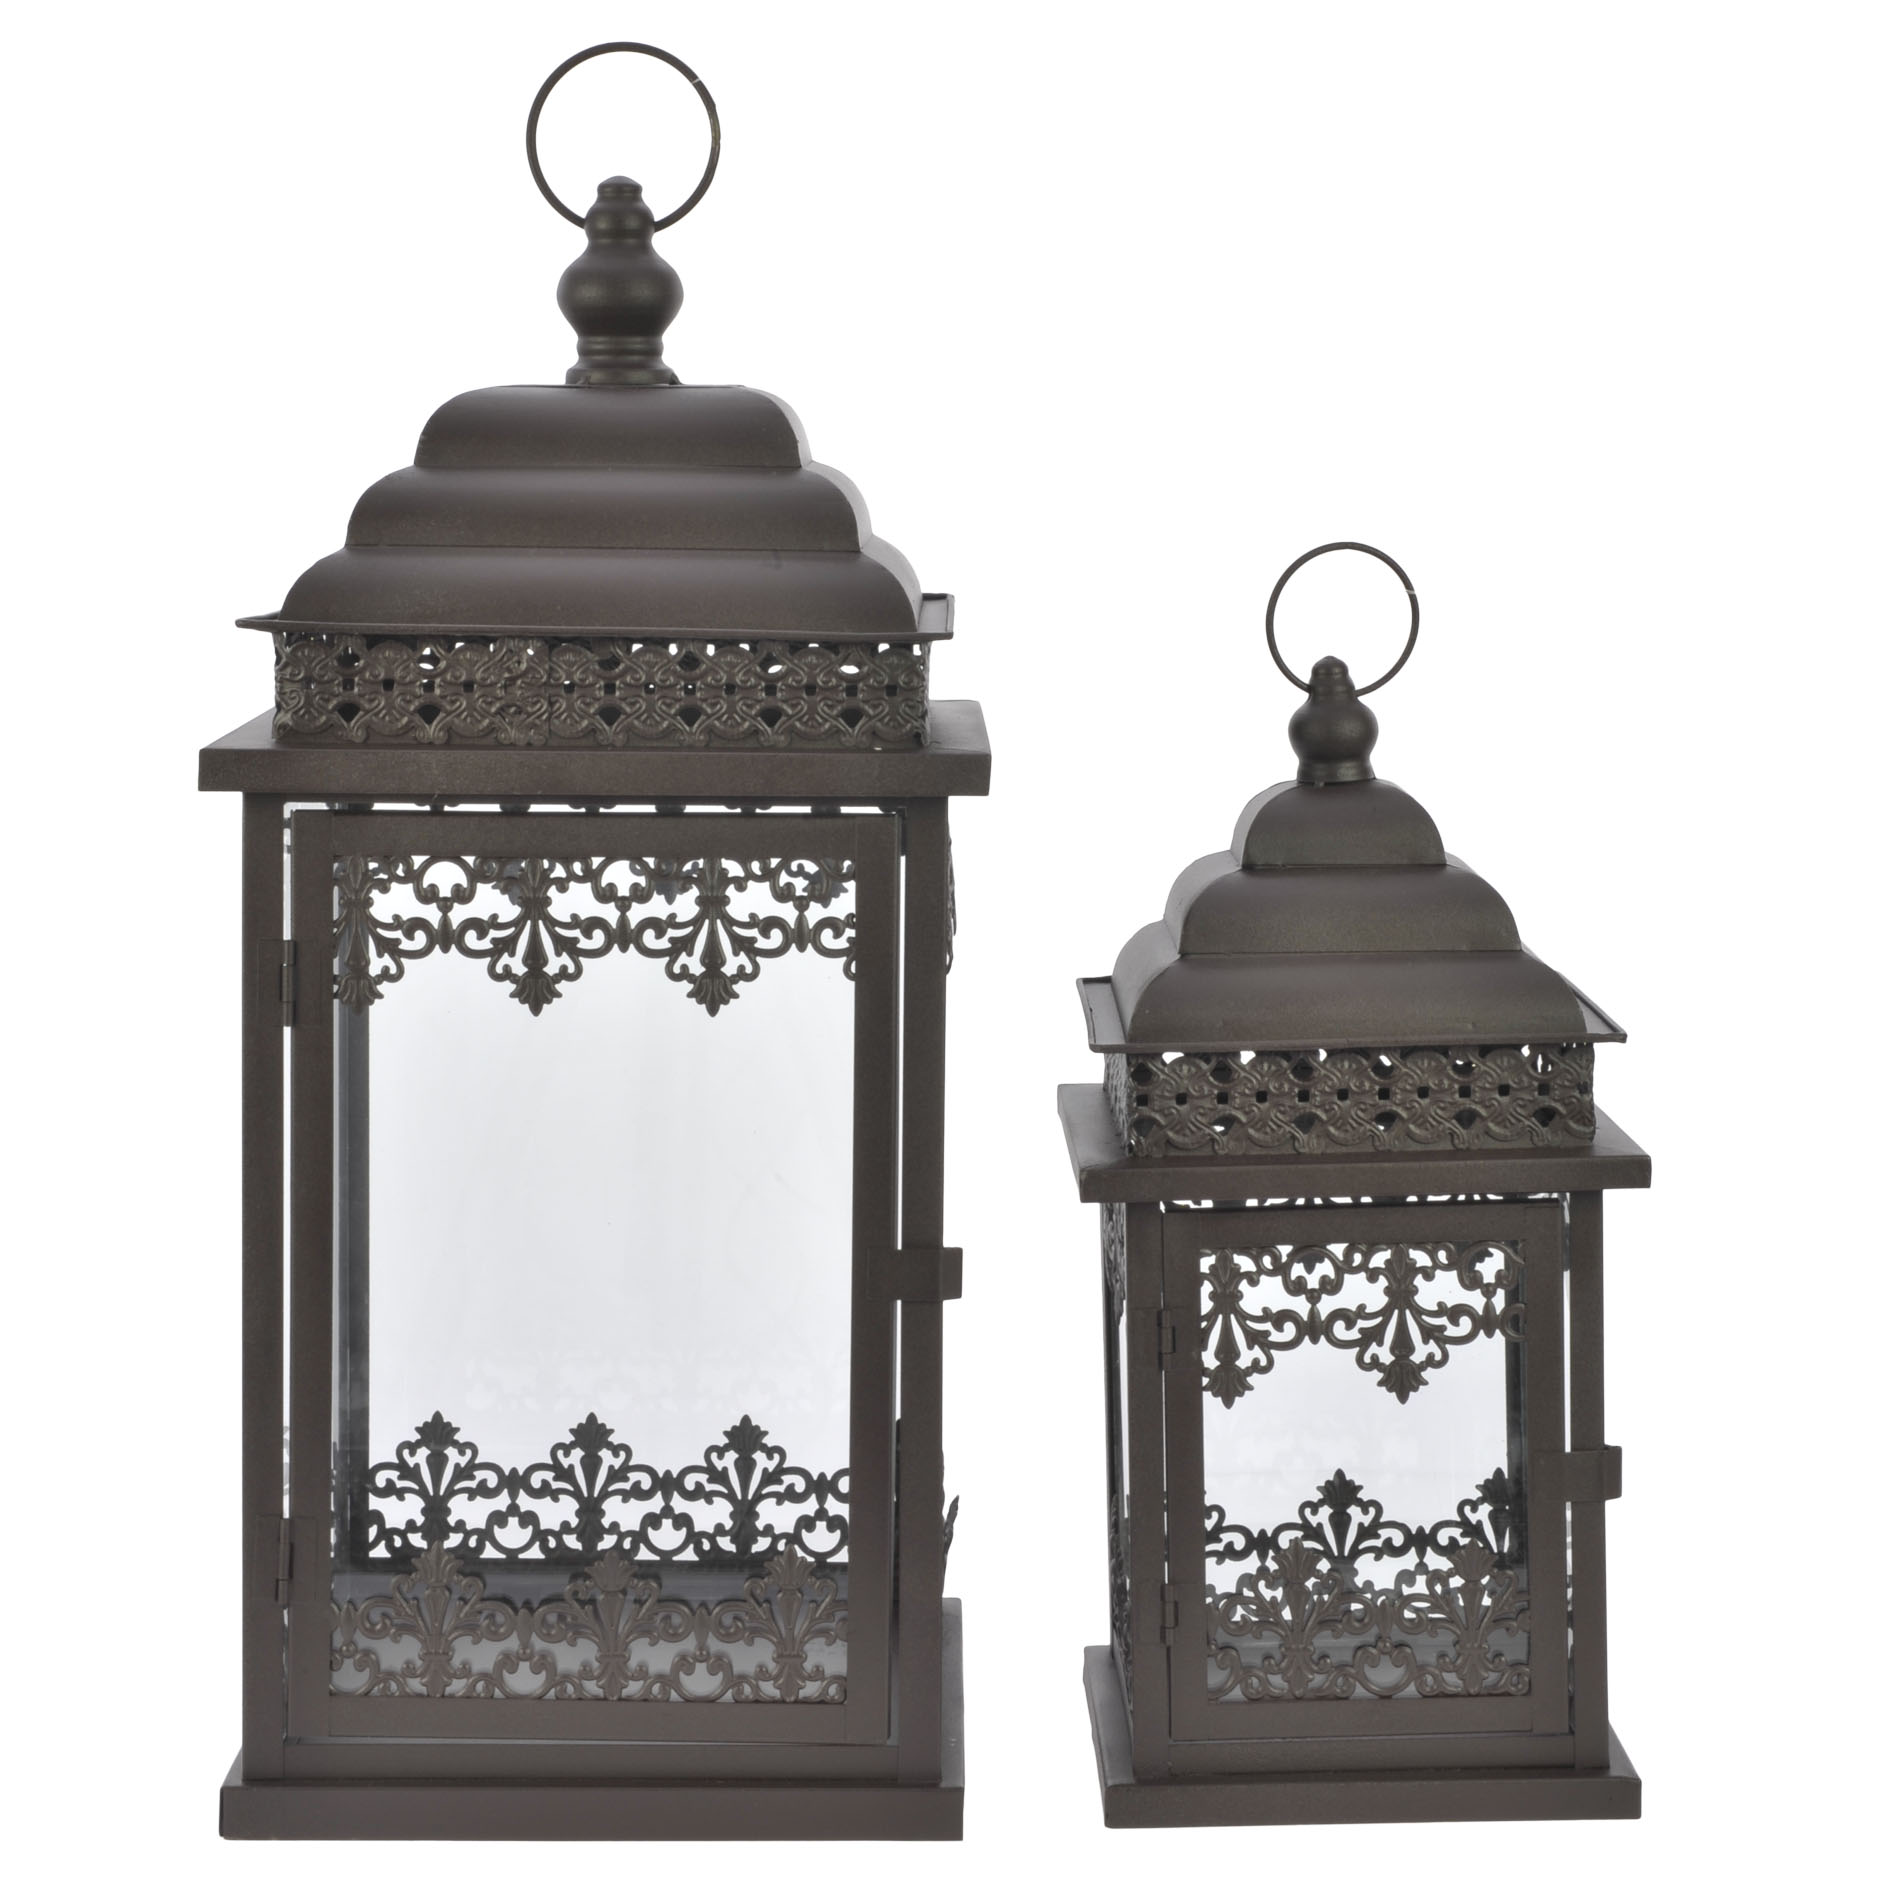 €120 S/2 IRON BROWN LANTERN 23X23X50